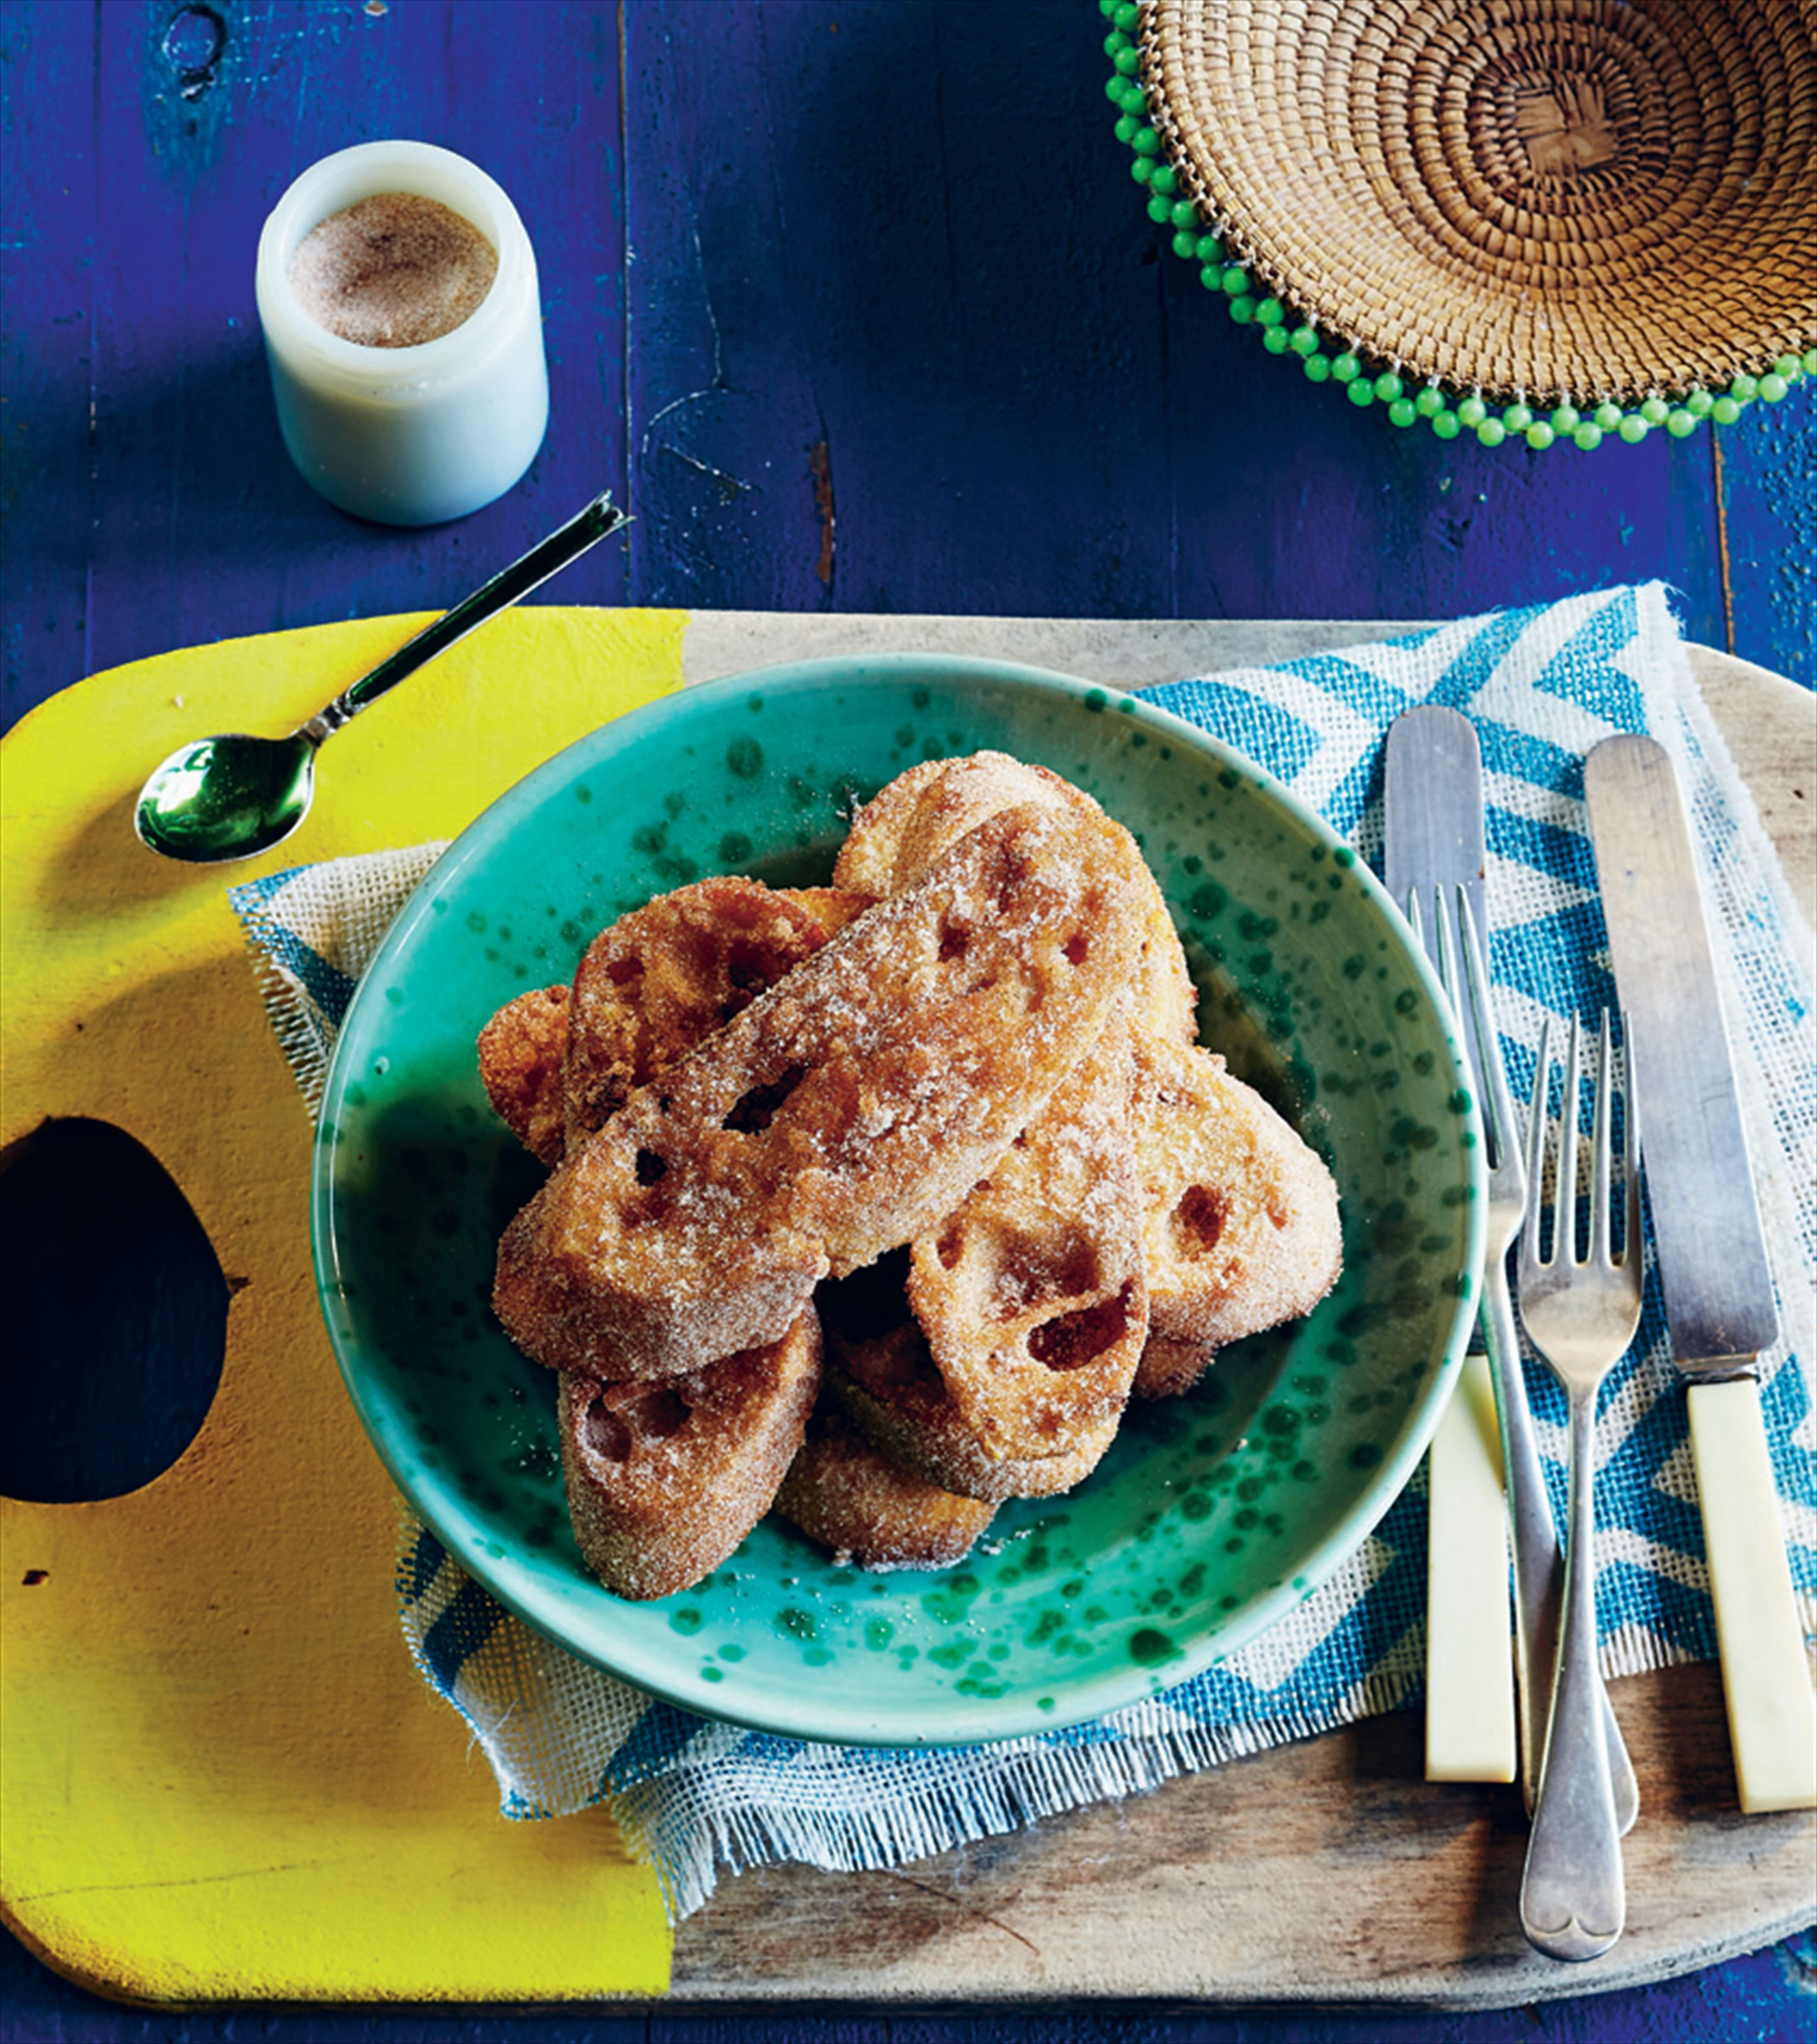 Deep-fried bread with sugar and cinnamon